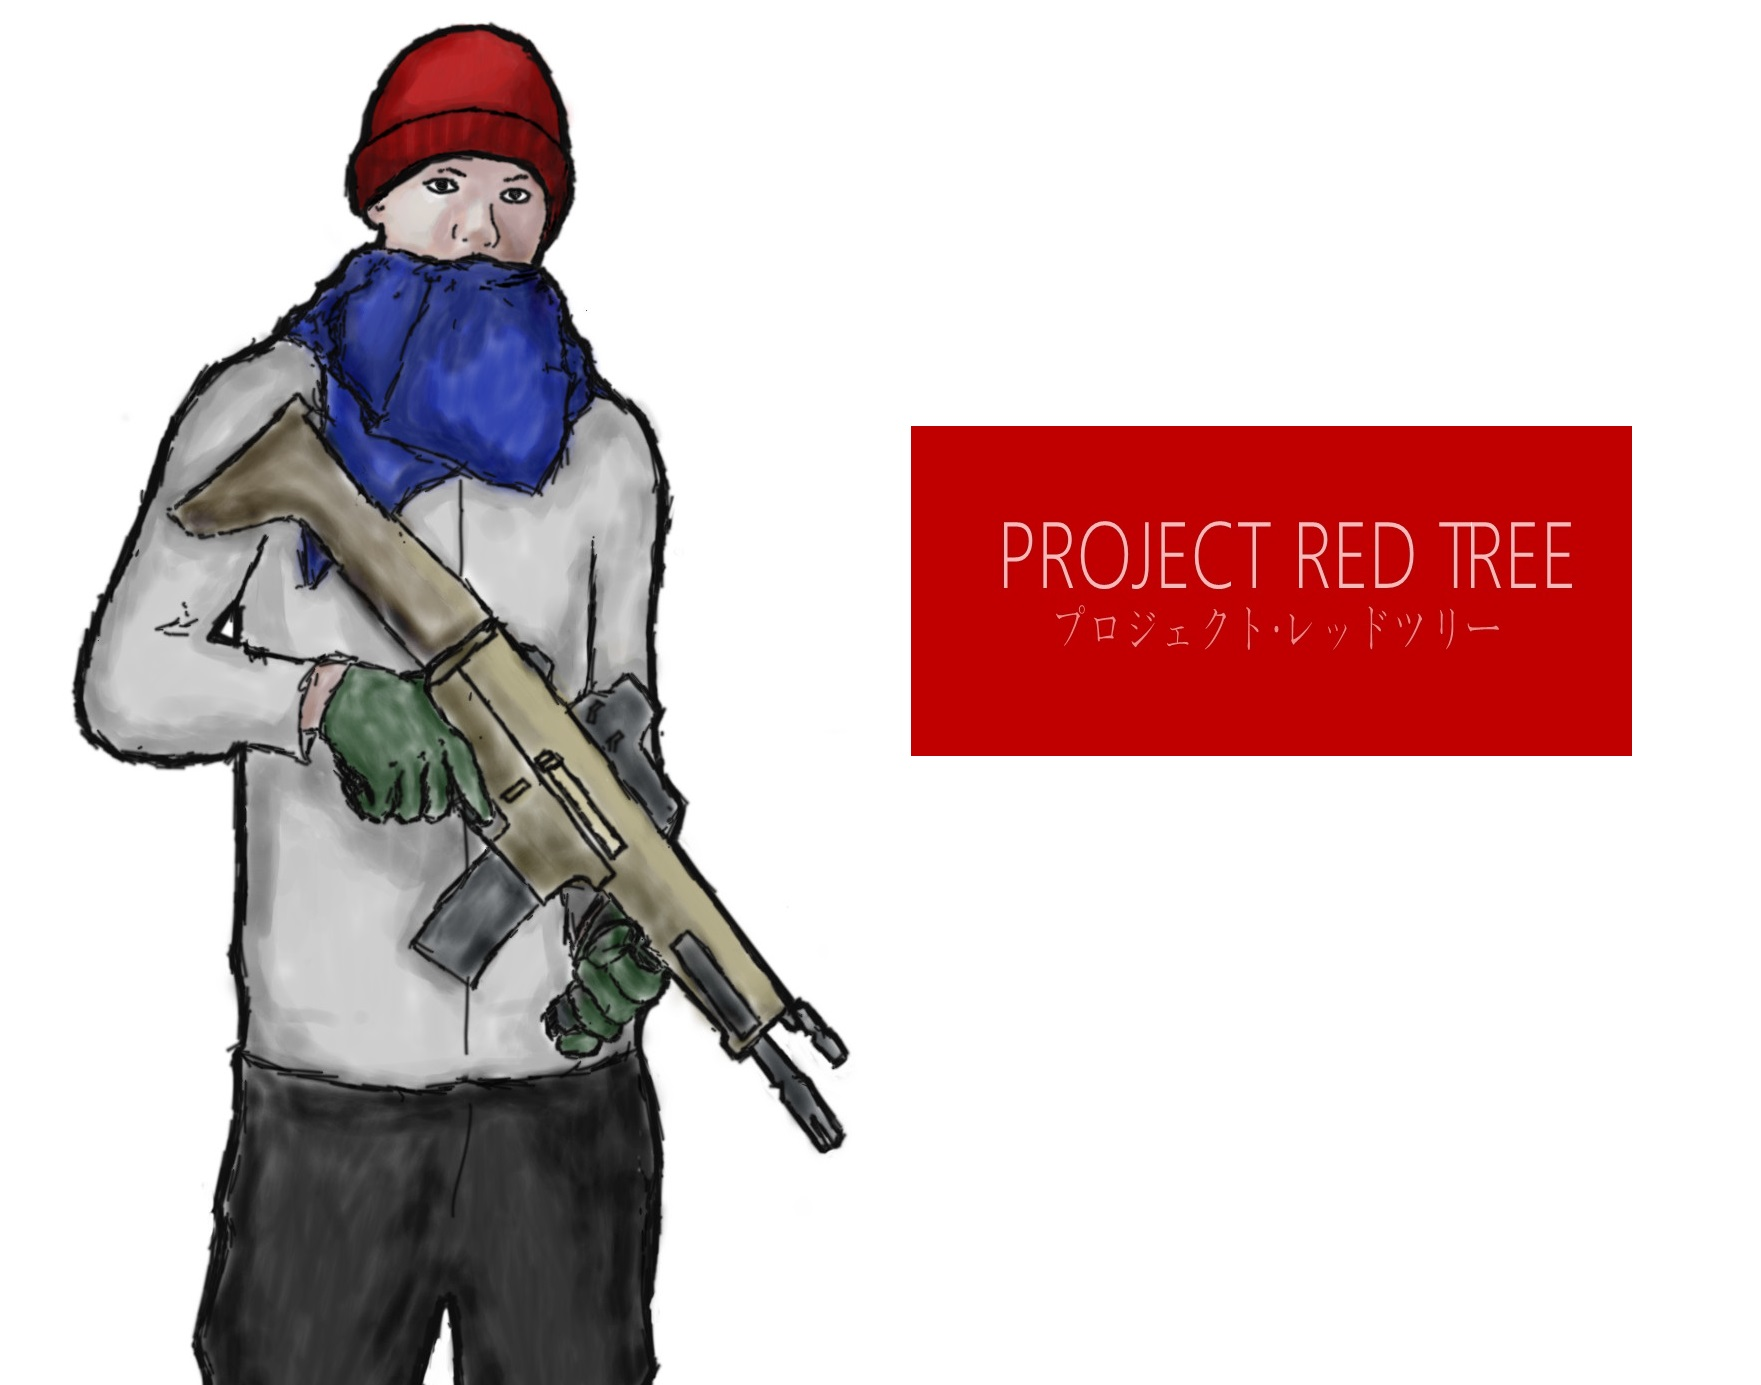 Project Red Tree